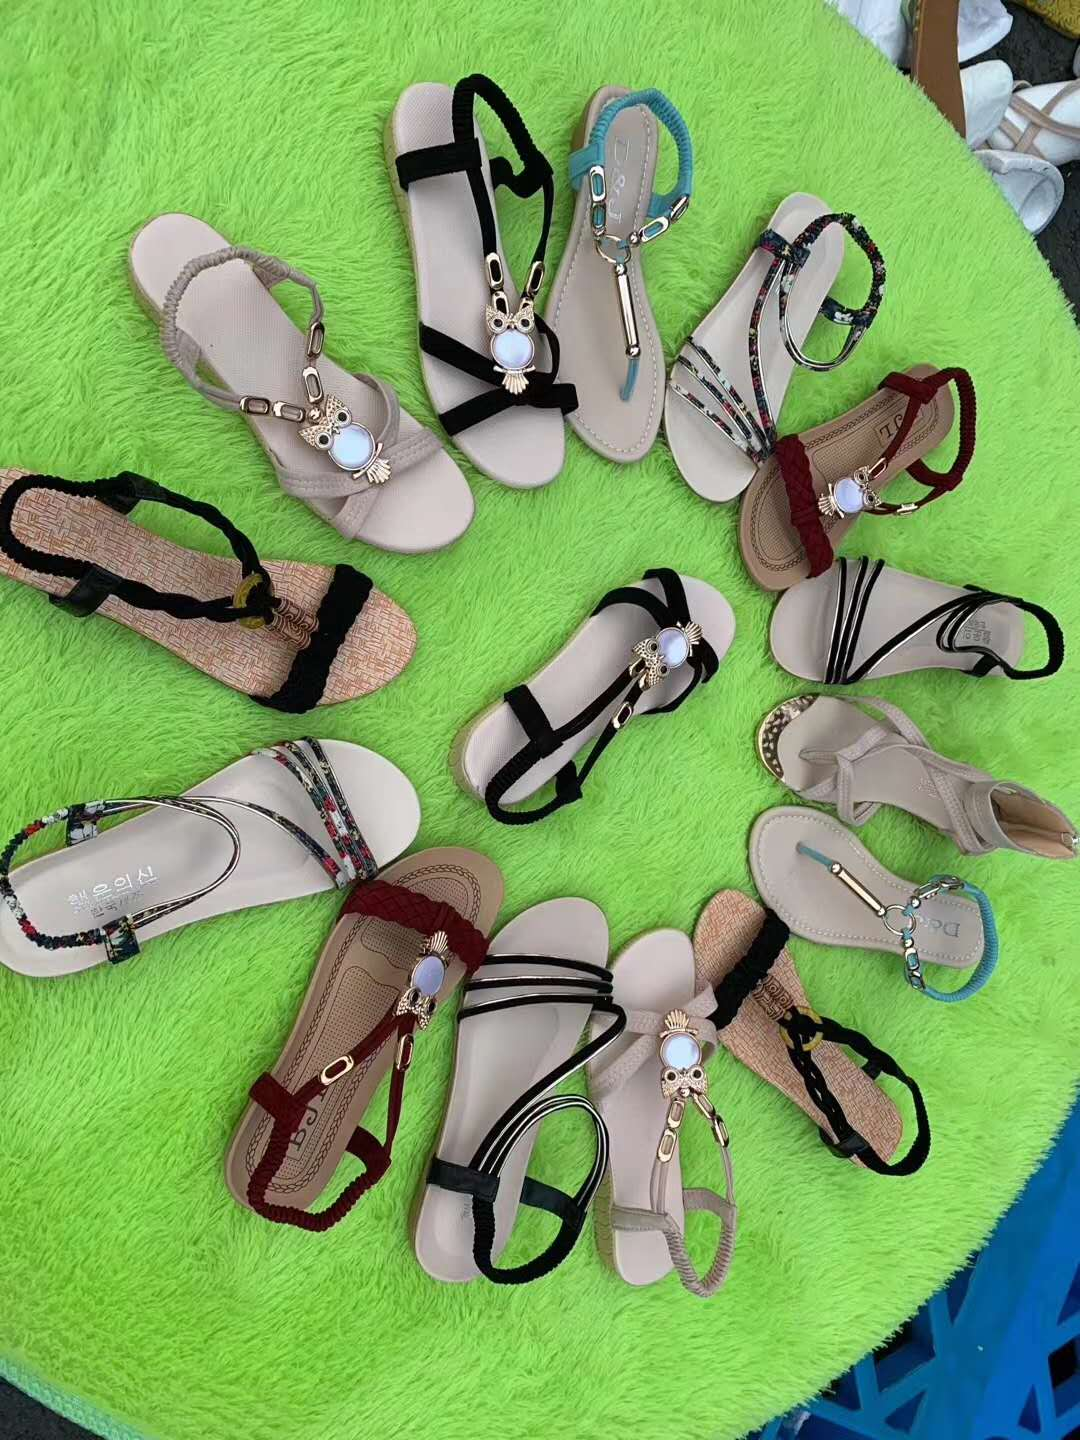 XY05241 summer hot-selling women sandals shoes Latest Design wholesale manufacture in china